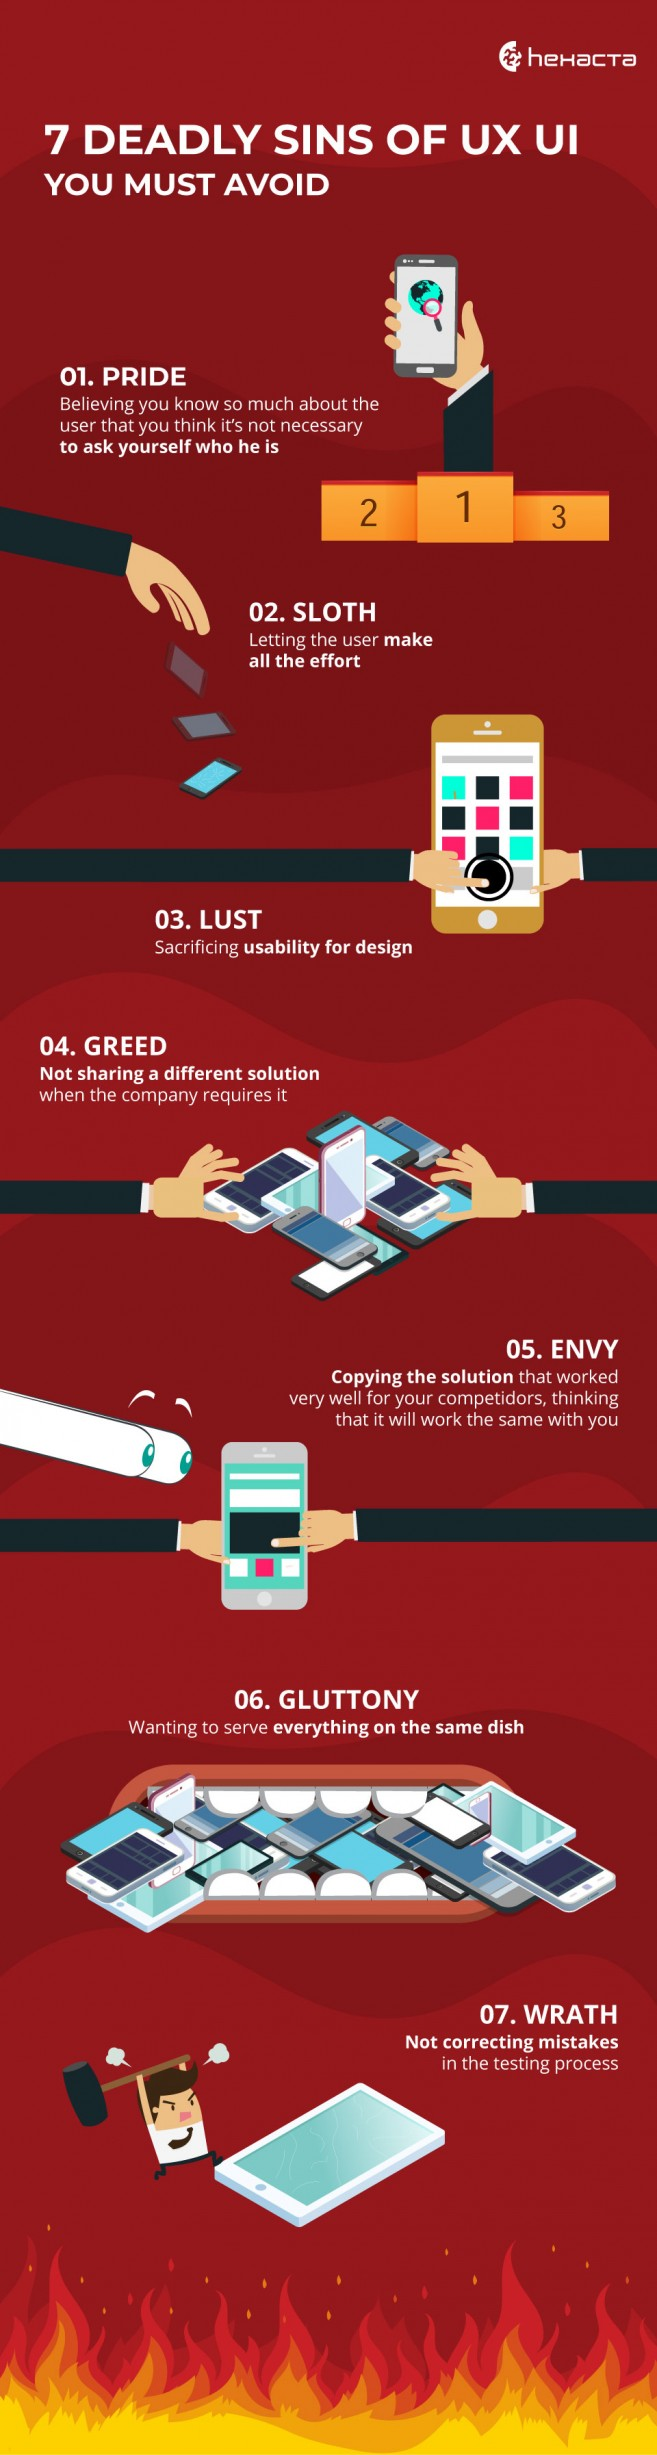 Infographic: 7 Deadly sins of UX UI design you have to avoid